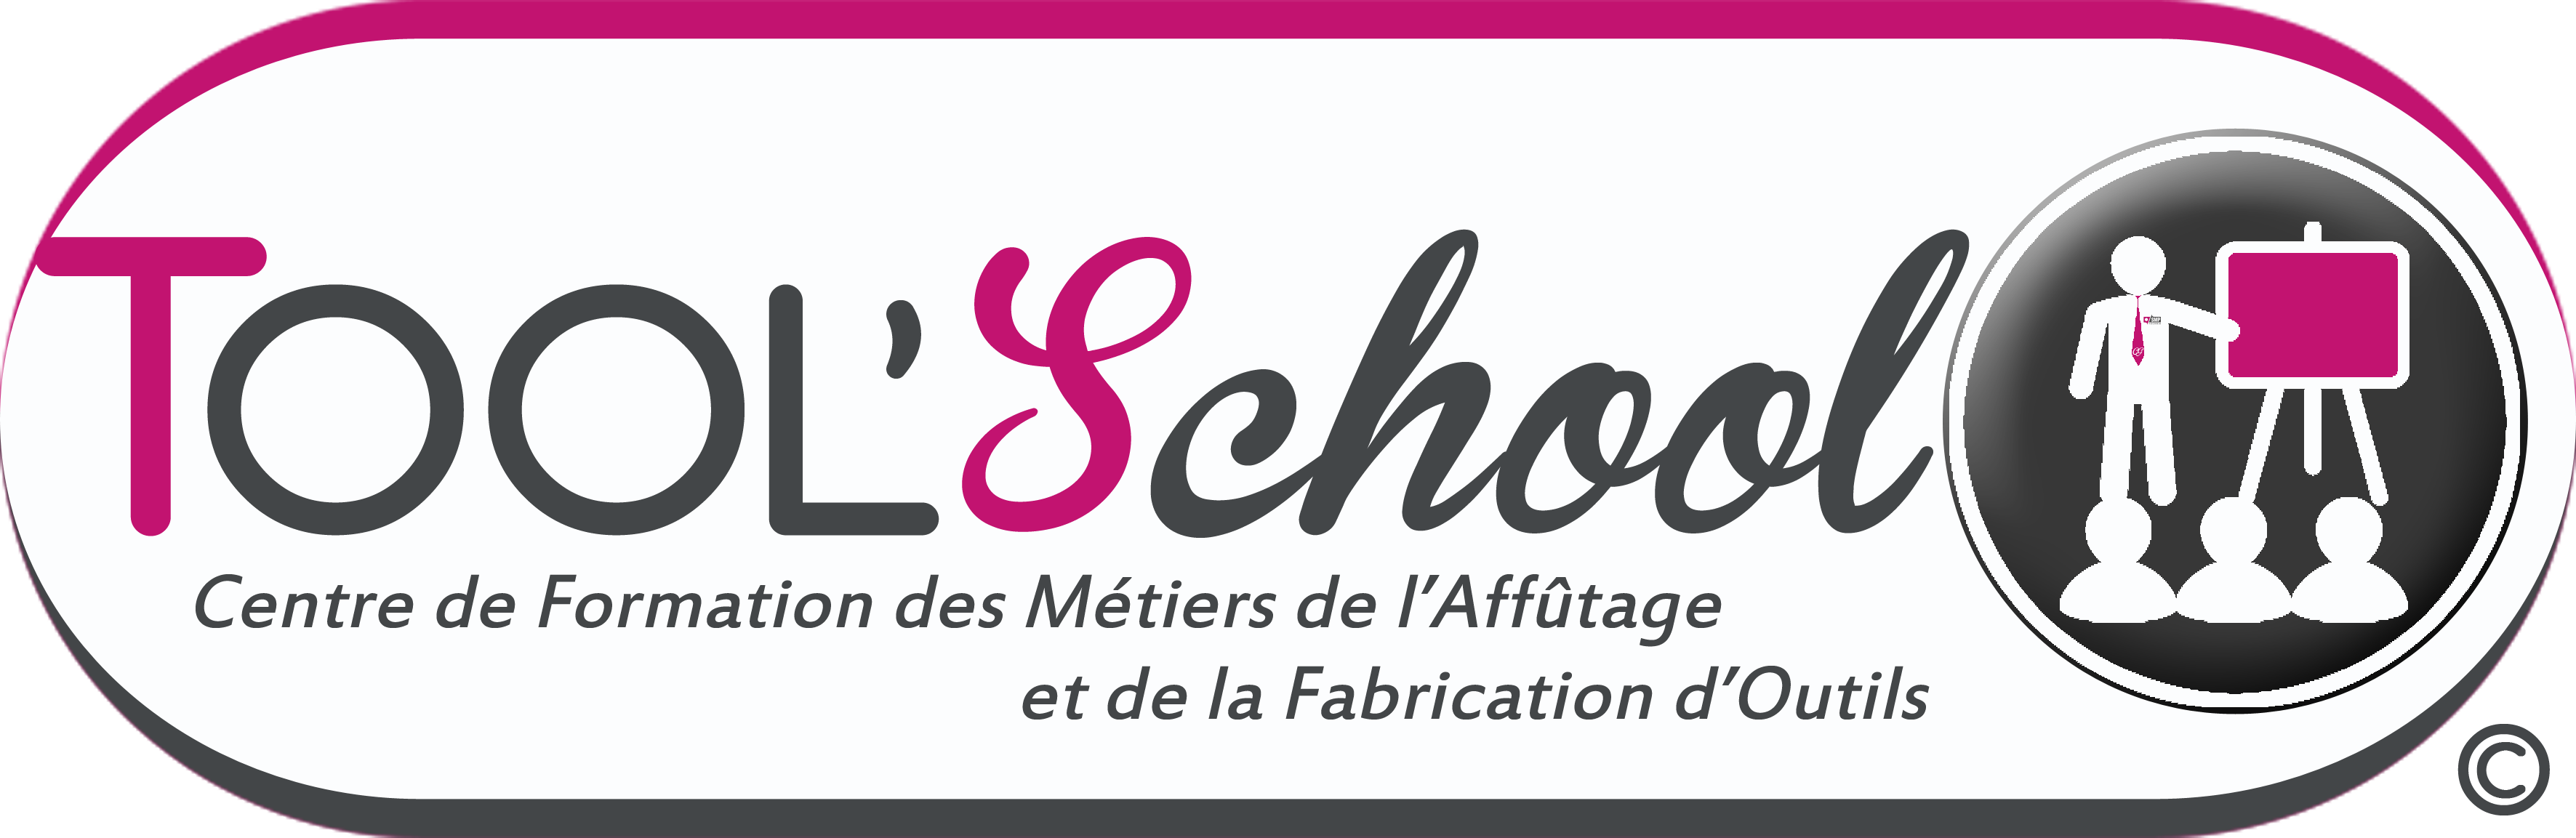 logo ToolsSchool.fr v2